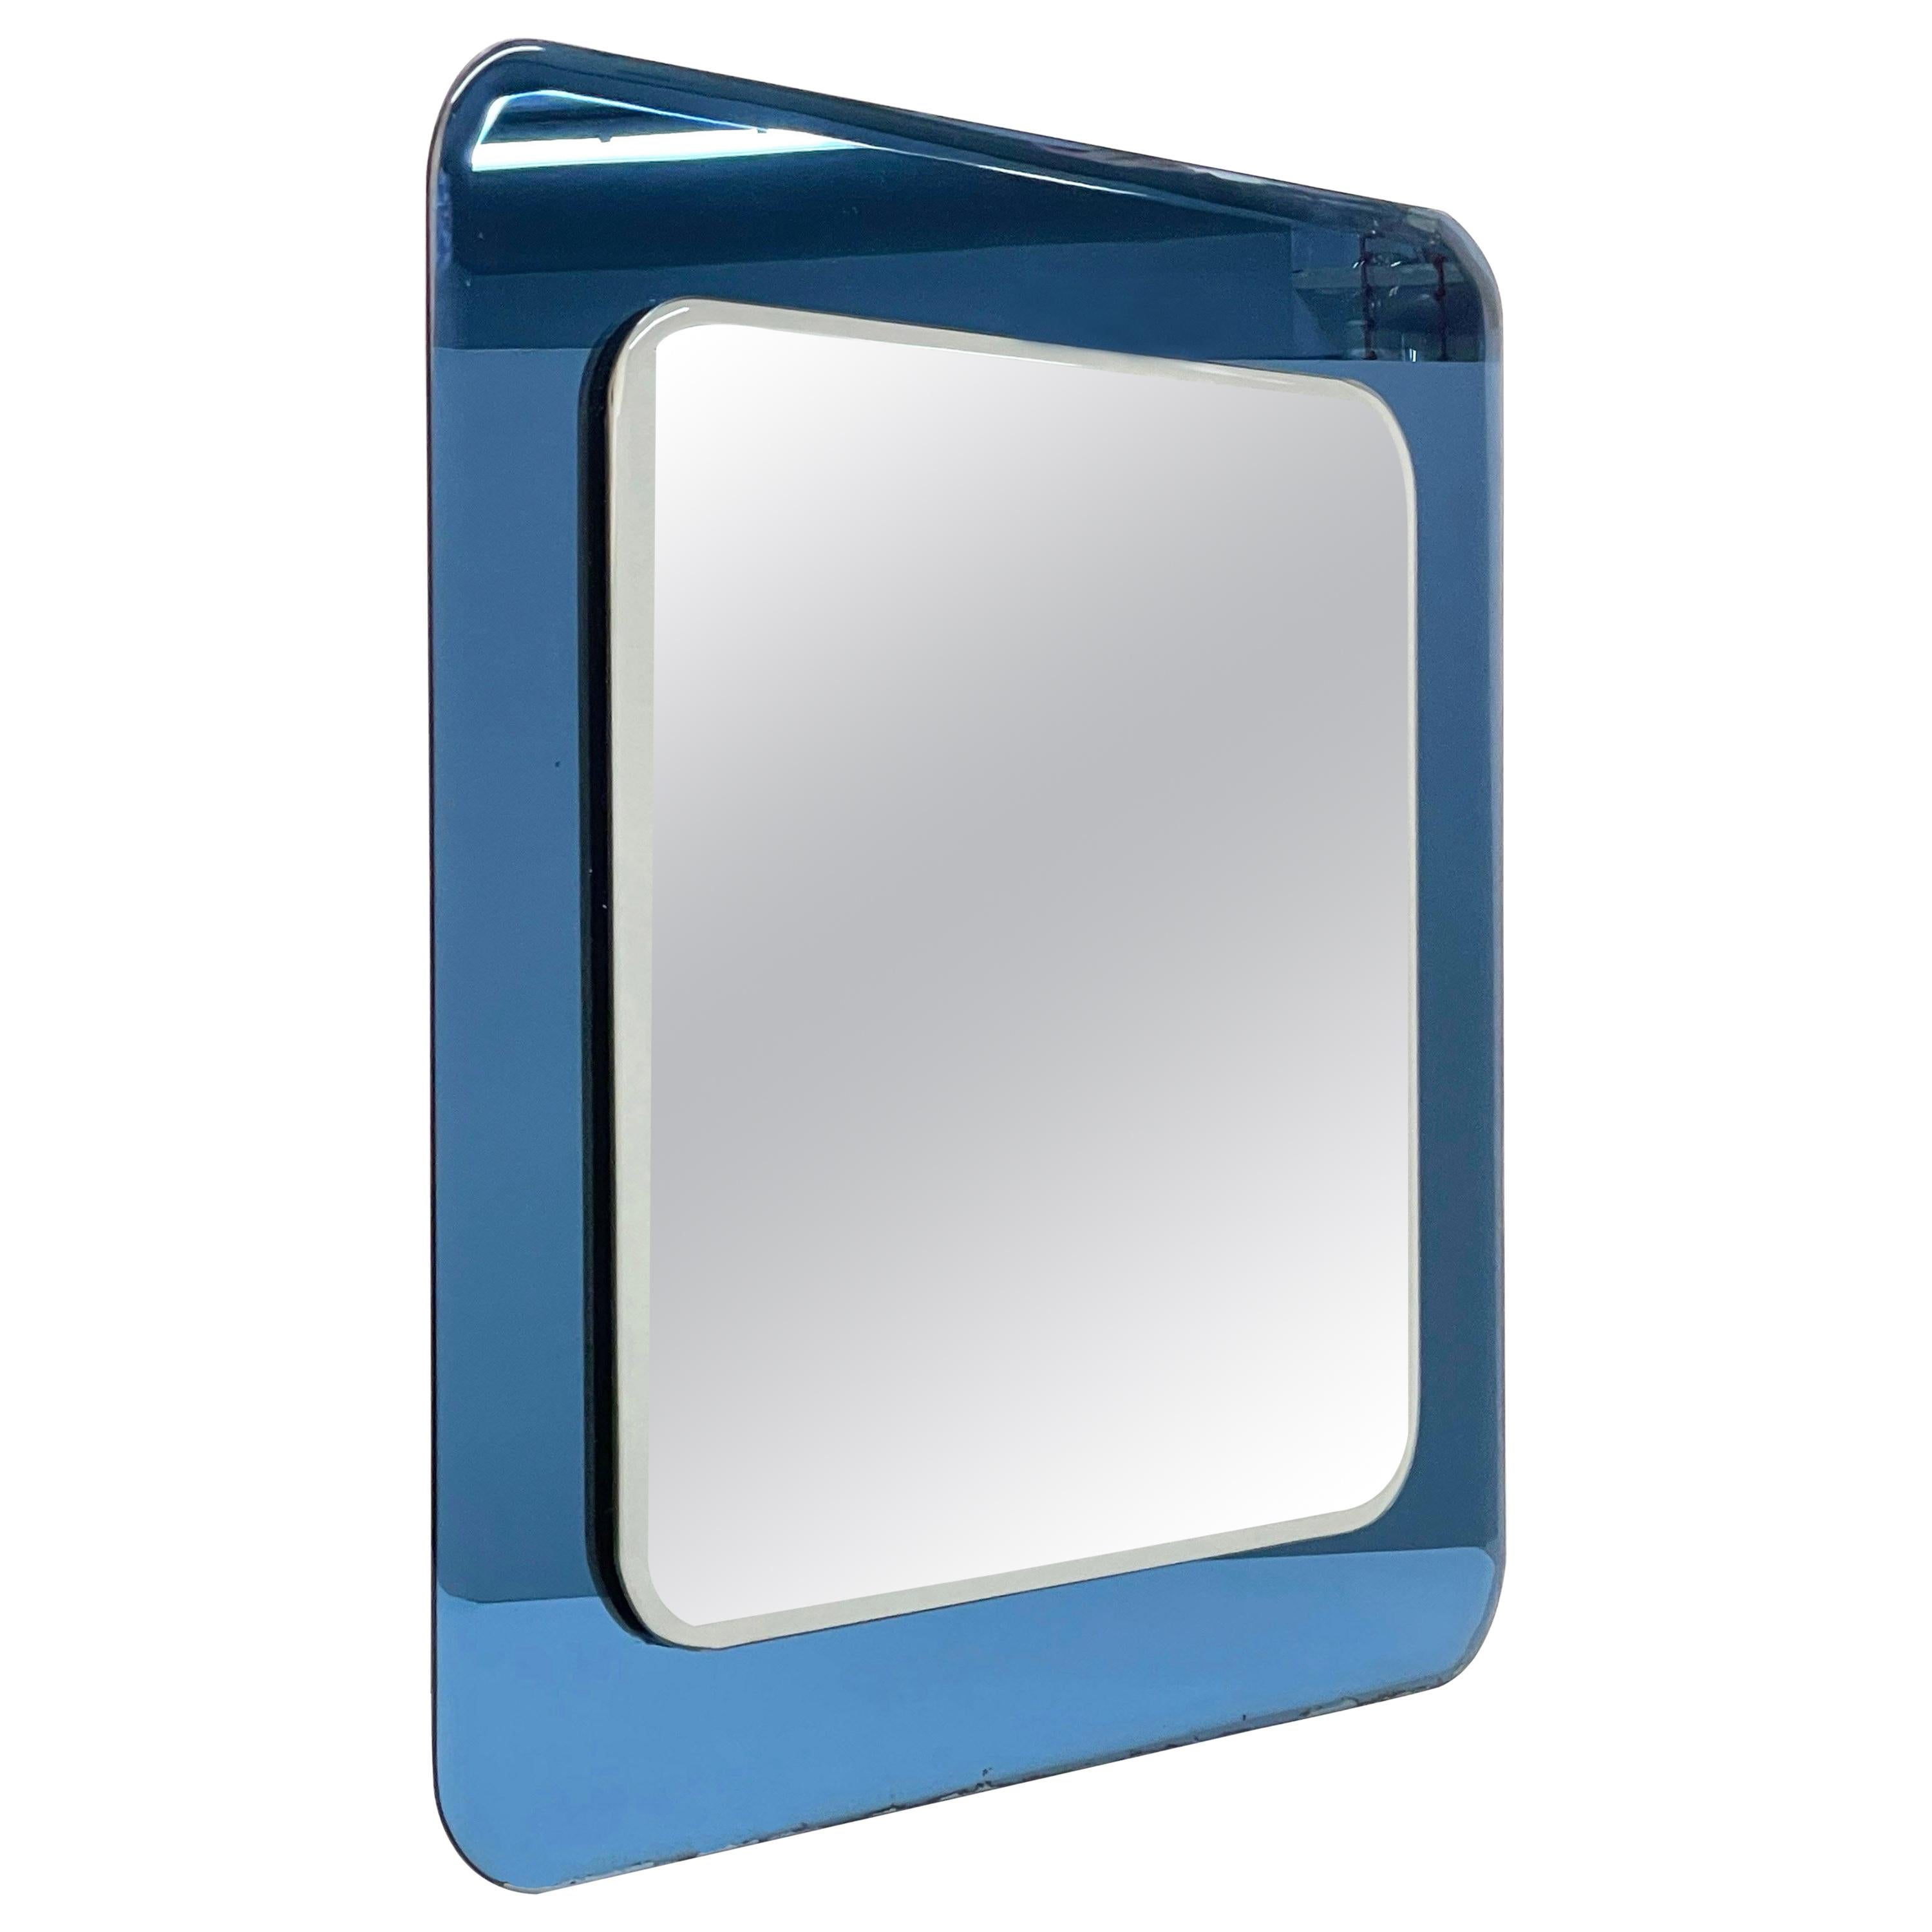 Midcentury Cristal Art Square Italian Wall Mirror with Blue Glass Frame, 1960s